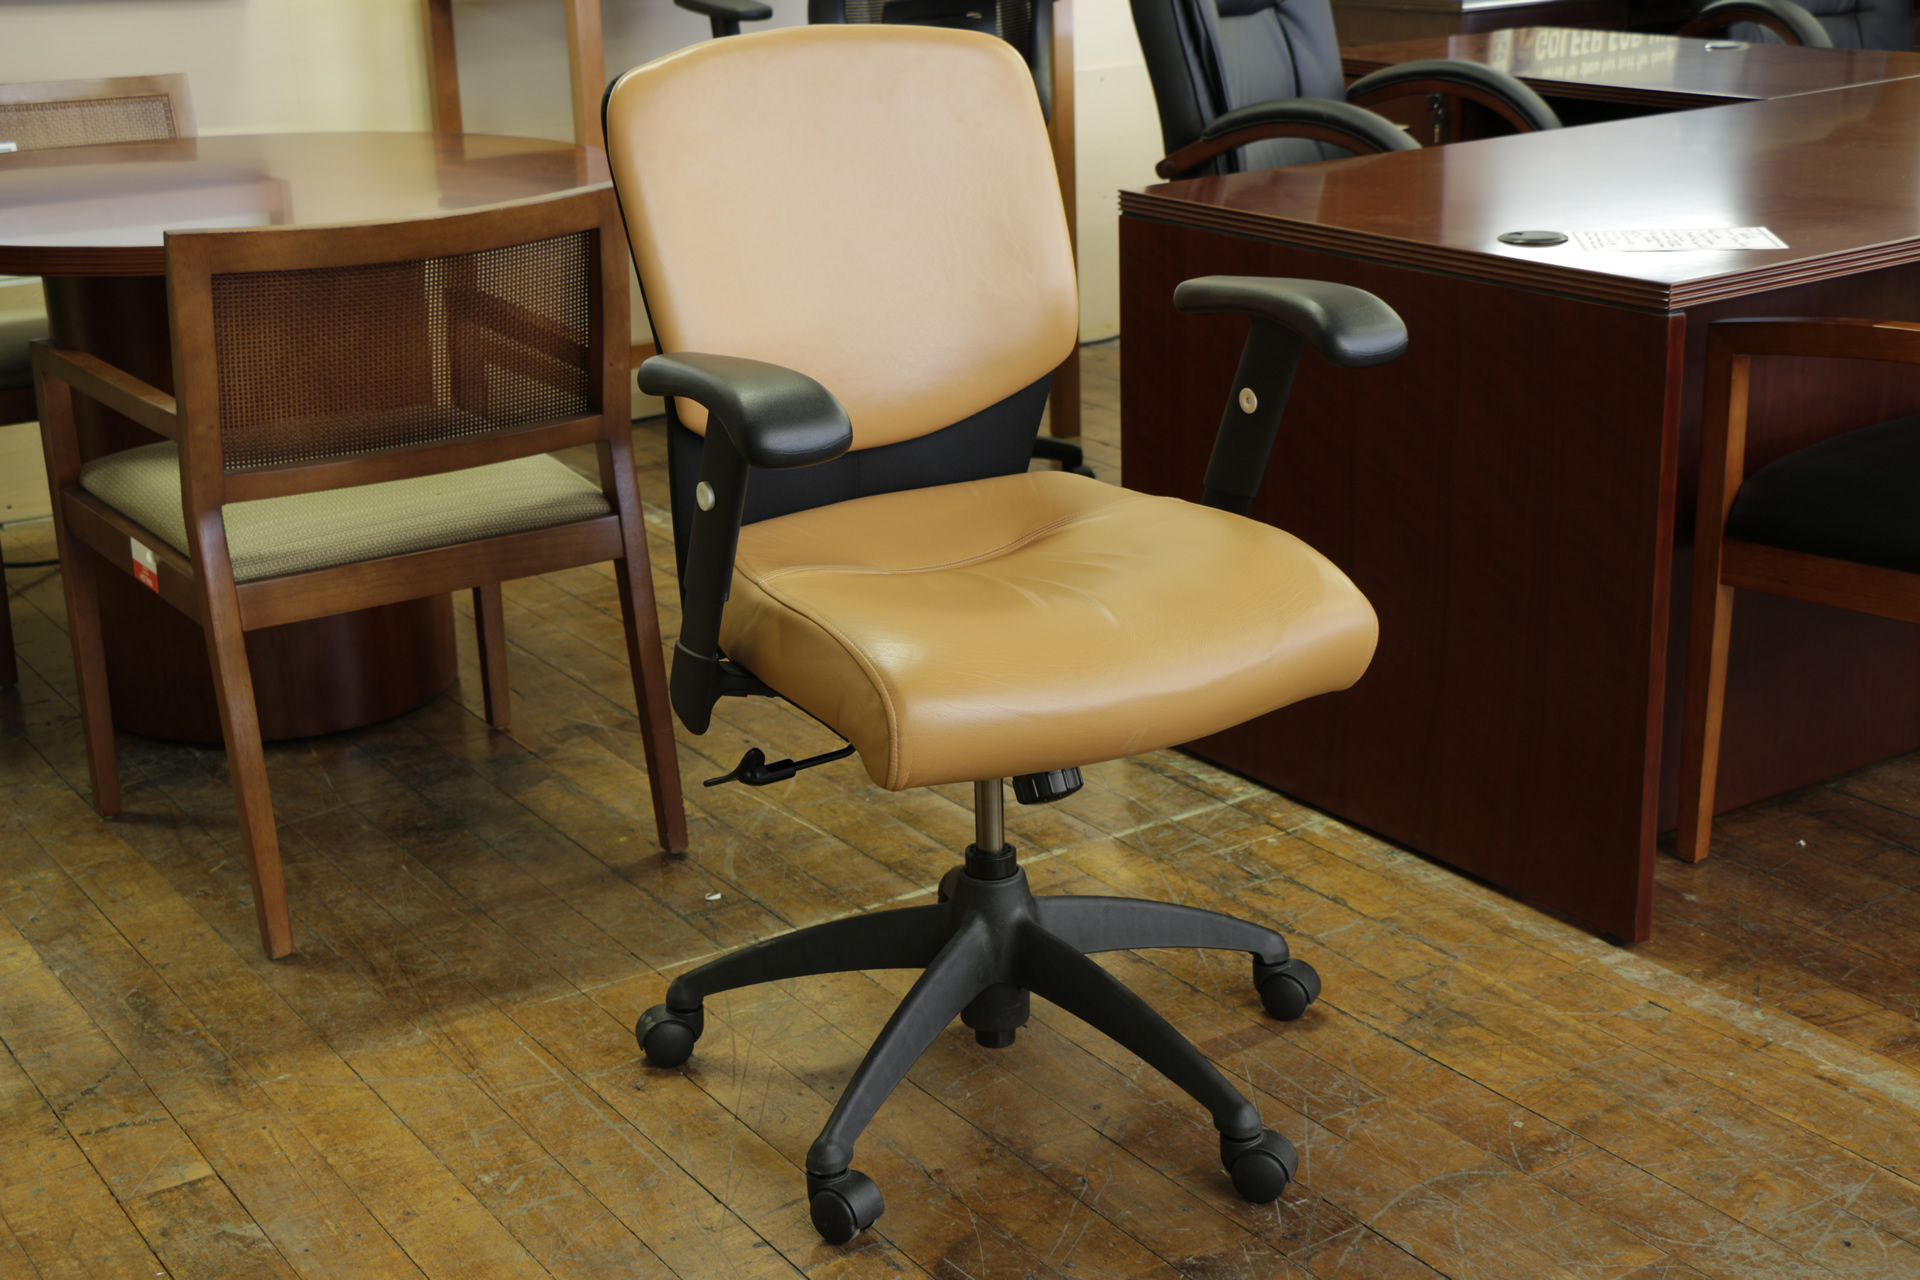 peartreeofficefurniture_peartreeofficefurniture_mg_3818.jpg